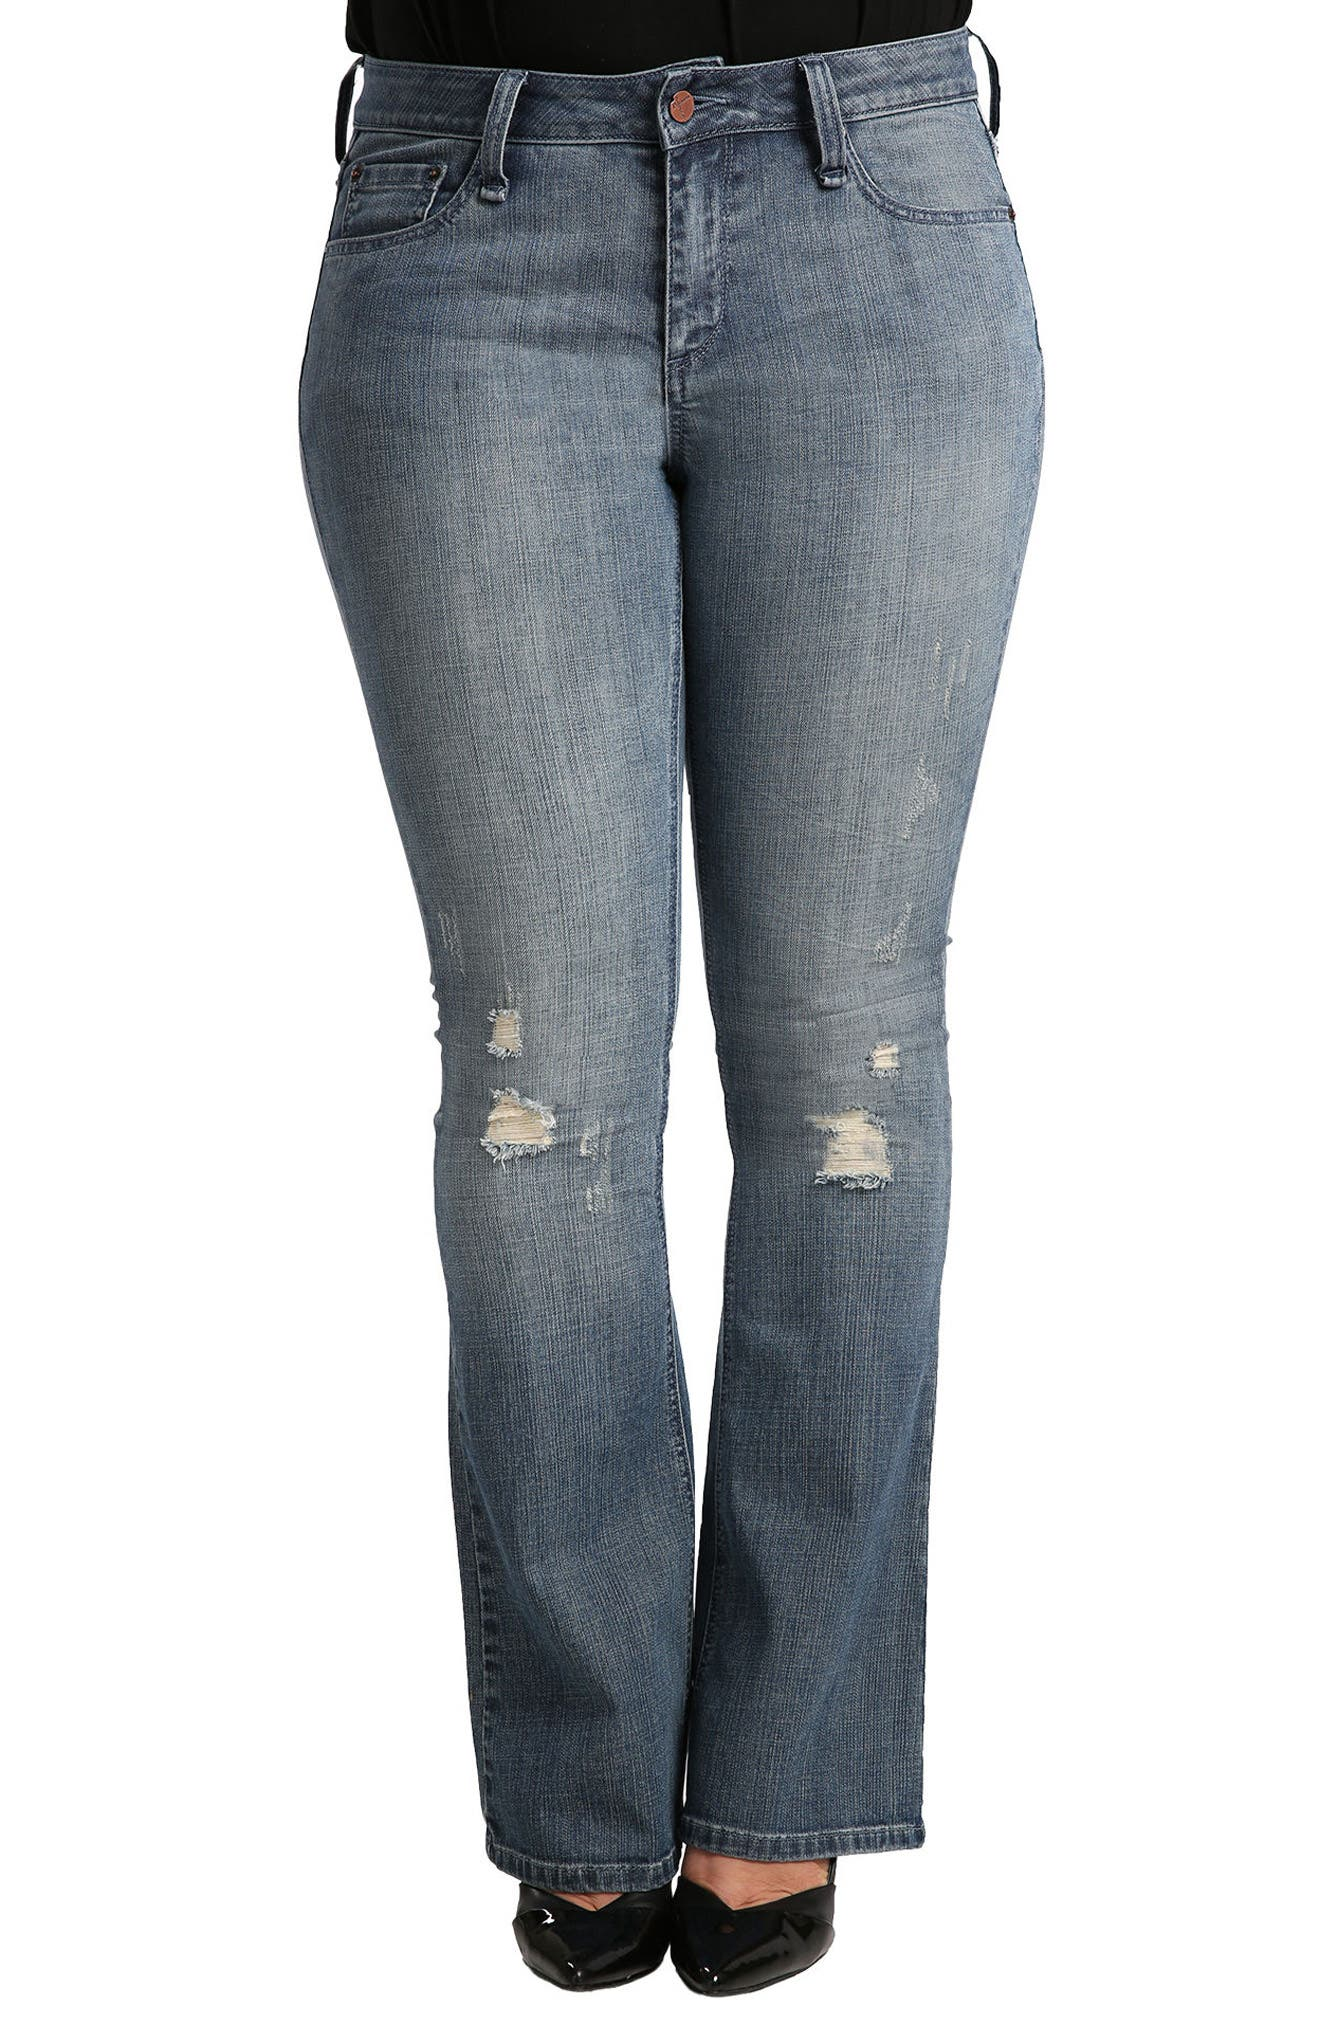 STANDARDS & PRACTICES, Clarice Uptown Mid Rise Bootcut Jeans, Main thumbnail 1, color, 1054BOYTOY